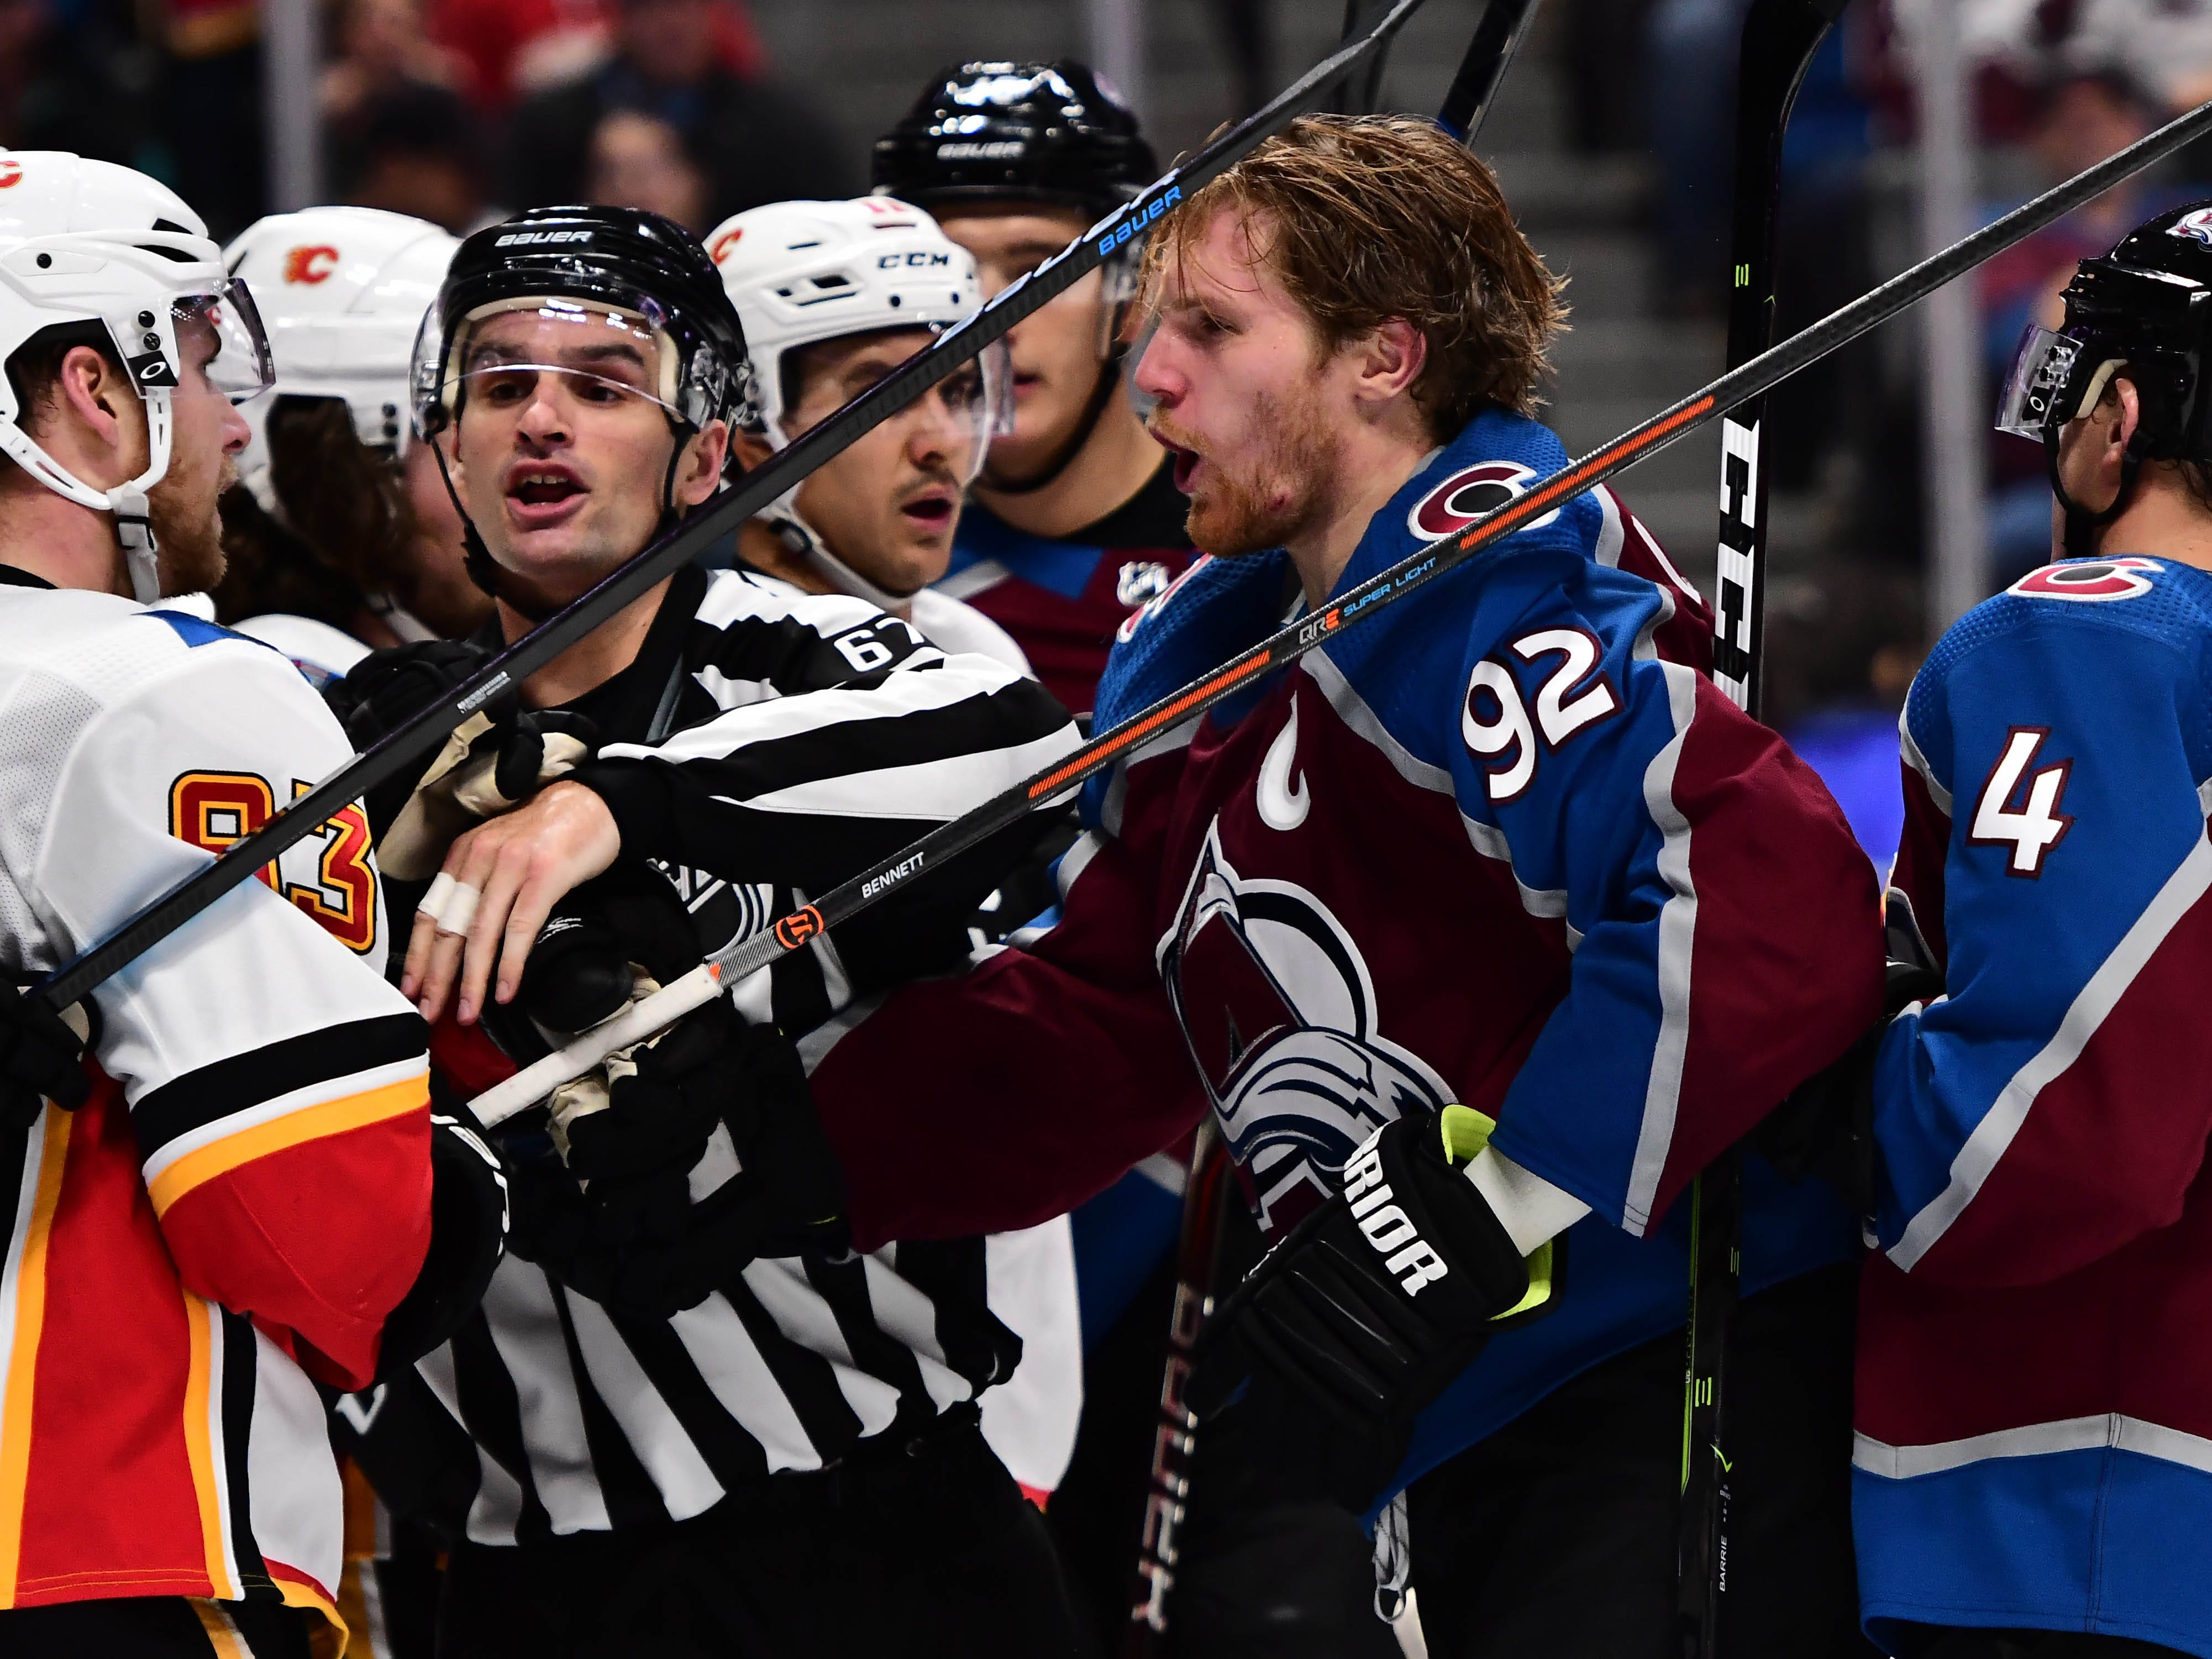 Oct 13: NHL linesman Travis Gawryletz (67) breaks up a fight between Avalanche left wing Gabriel Landeskog (92) and Flames center Sam Bennett (93)